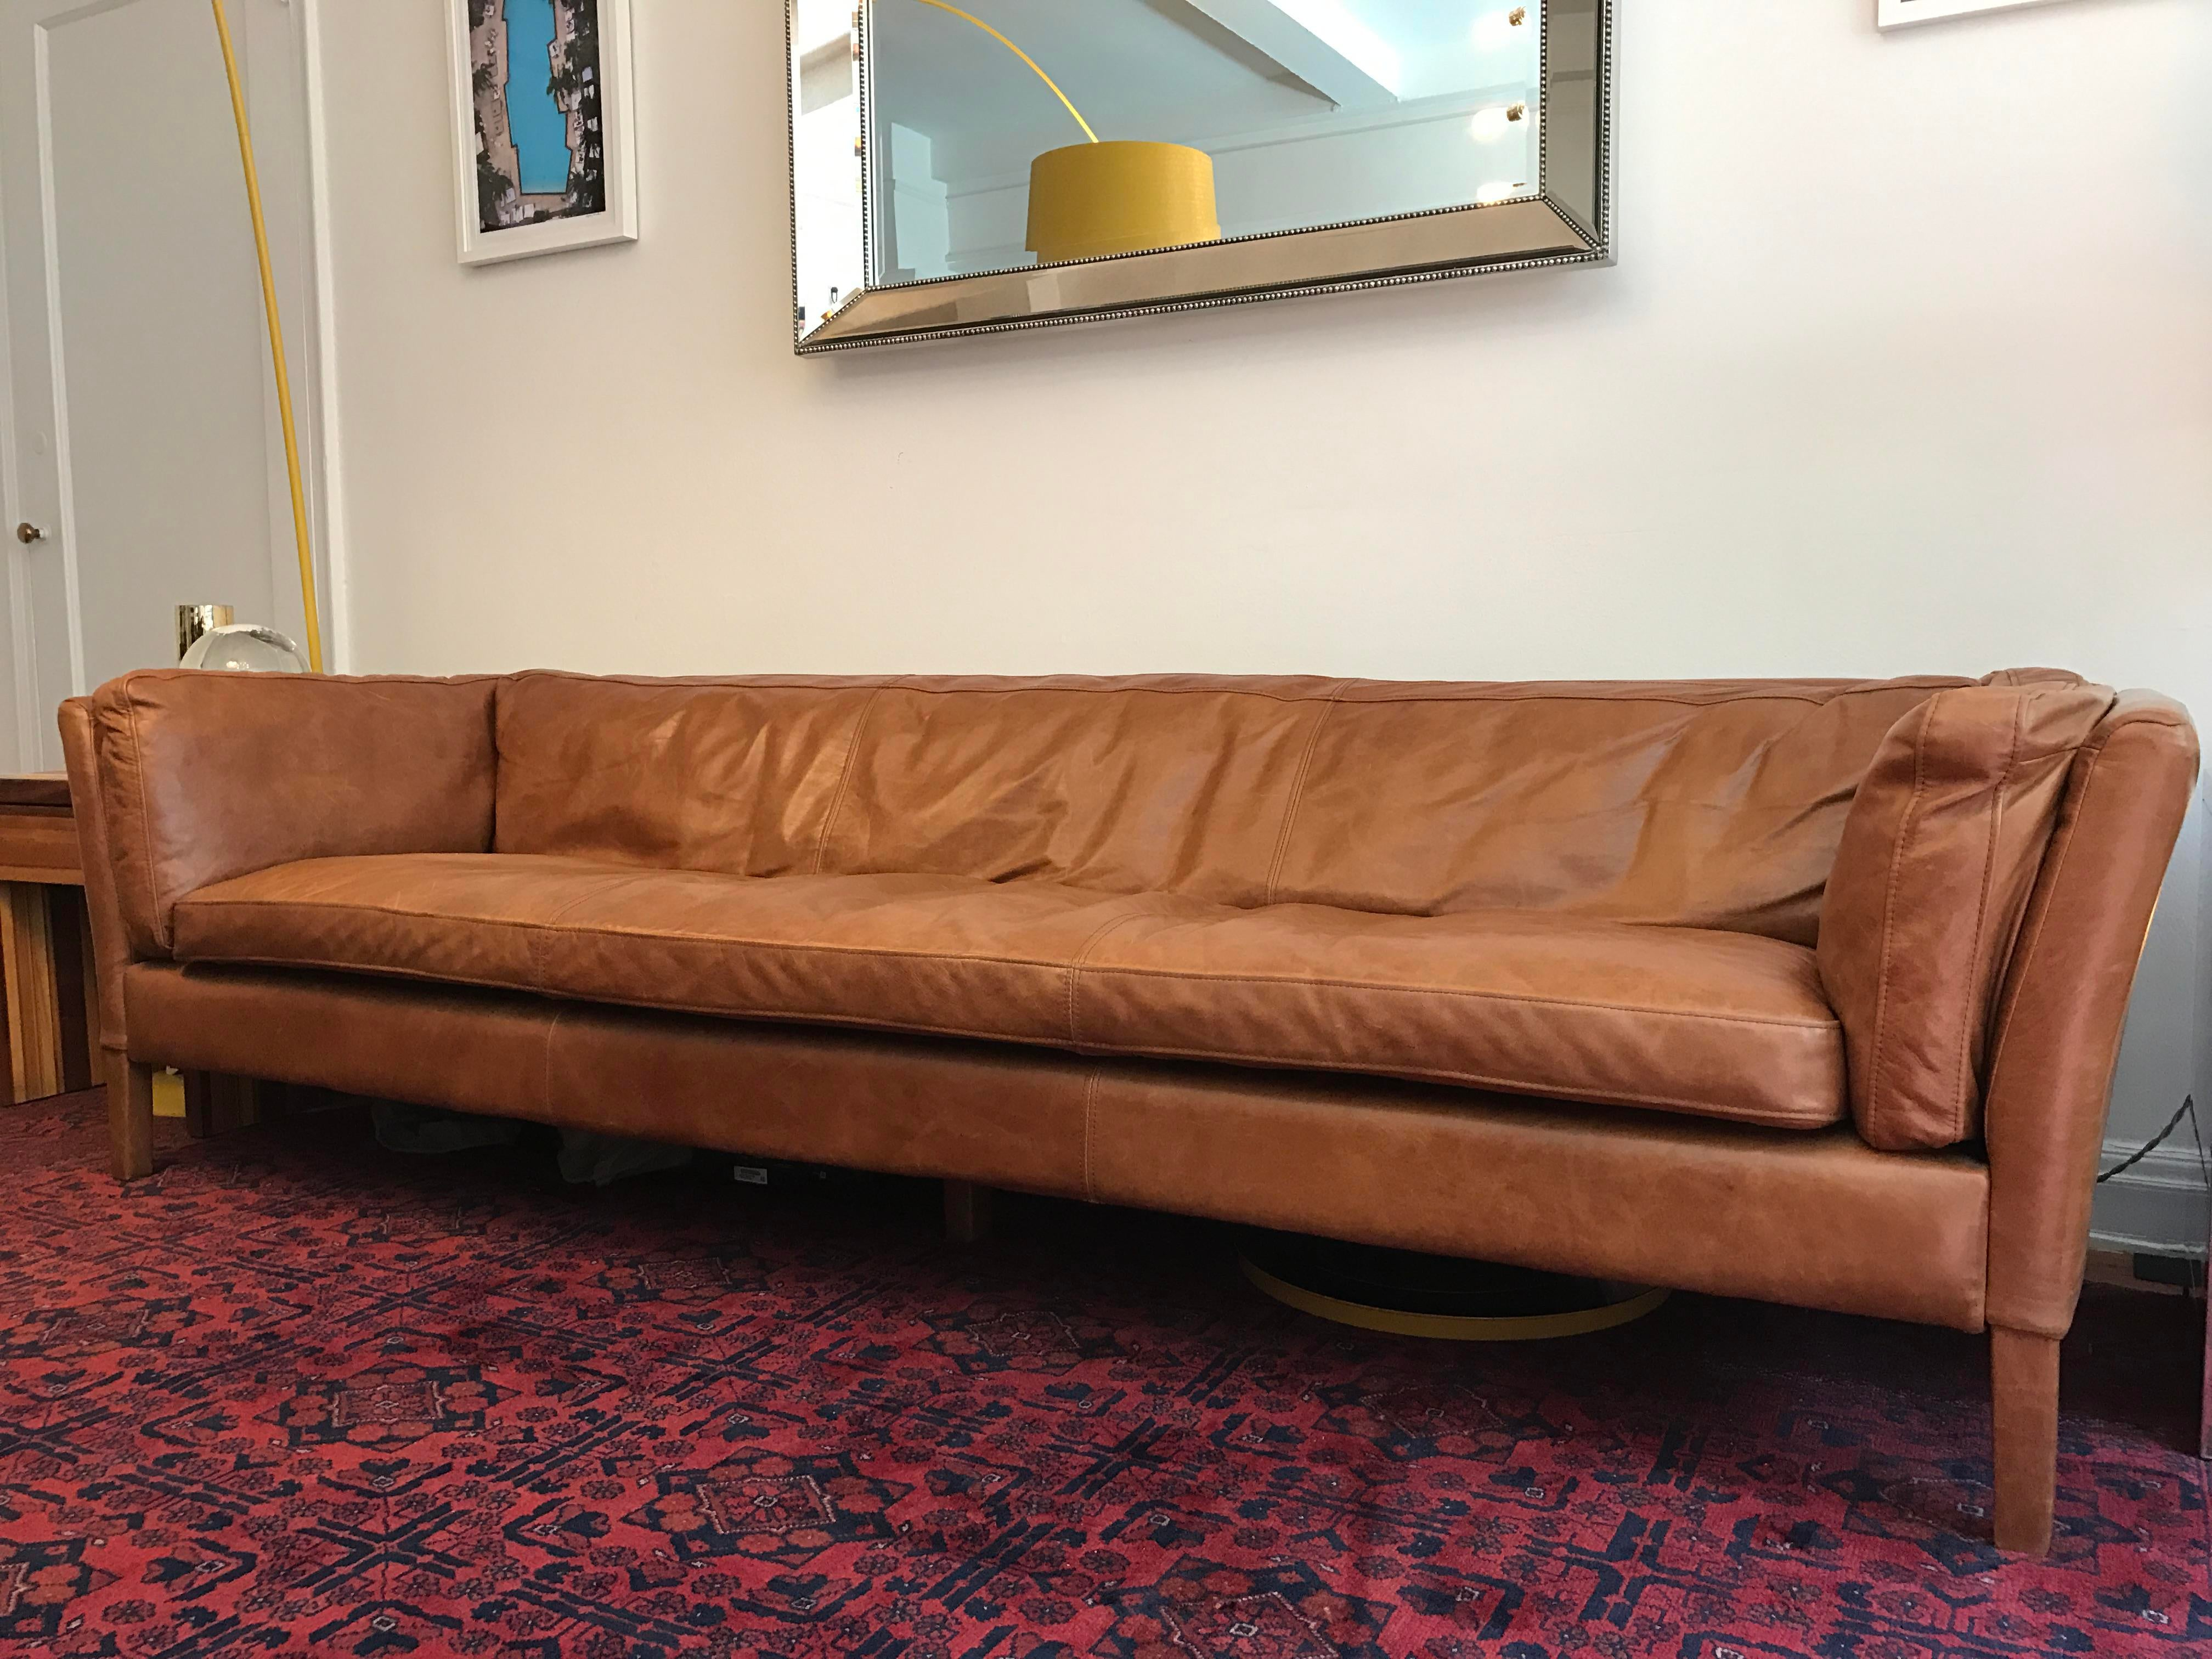 Superieur Great And Elegant Sofa With Slightly Flared Arms. Comfortable Sanctuary For  Smaller Sitting Areas.